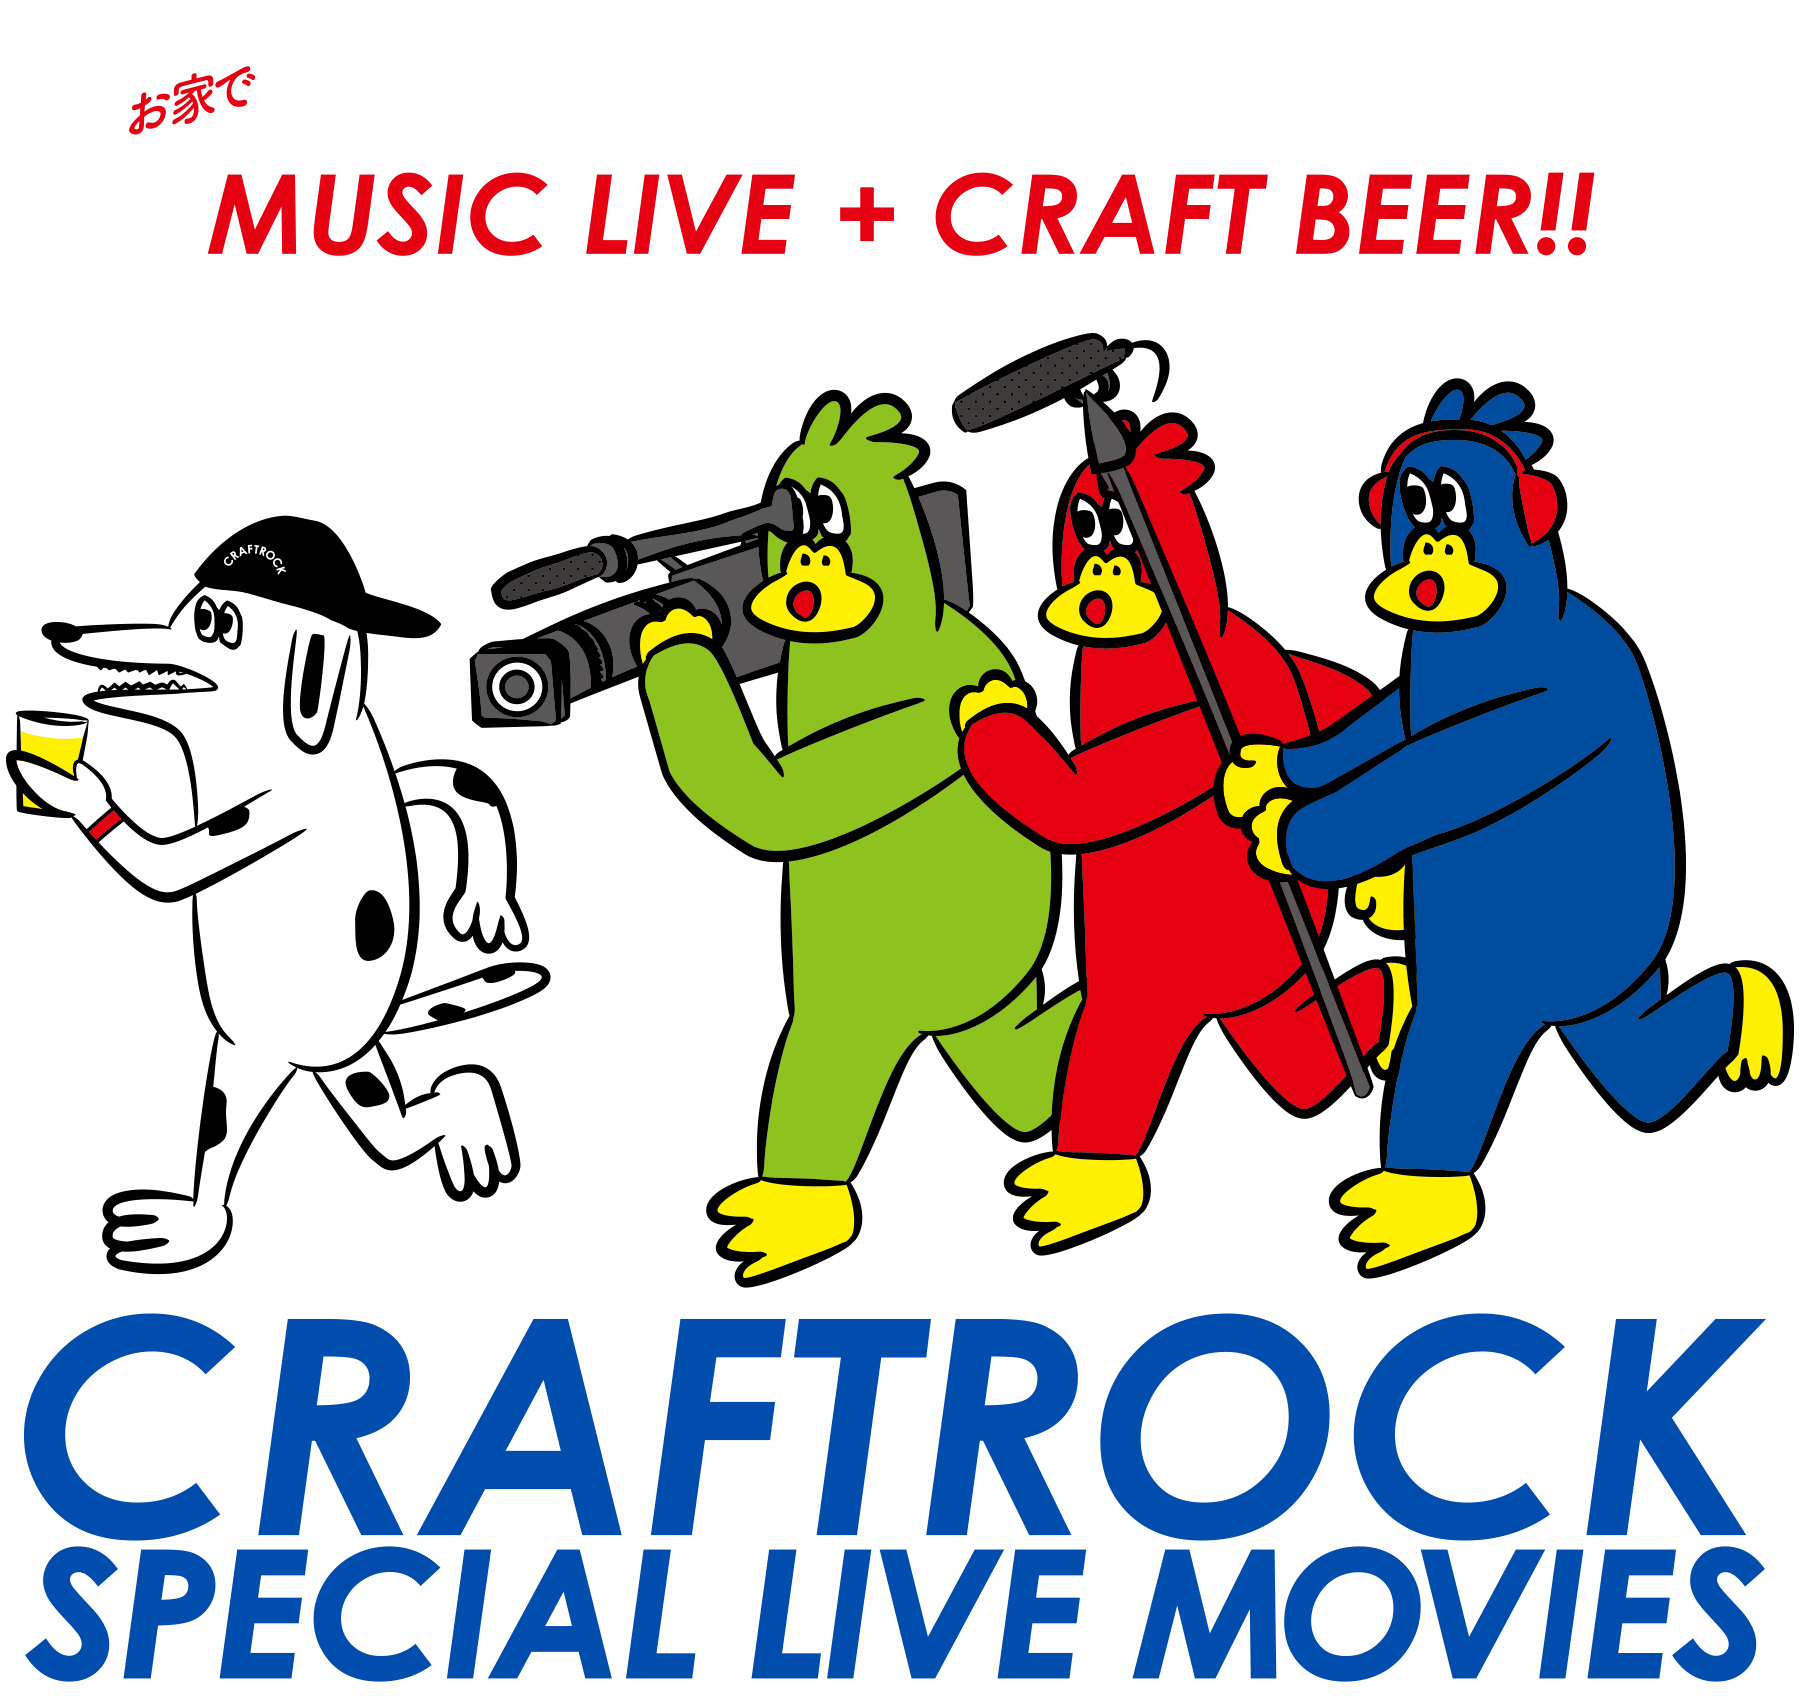 CRAFTROCK SPECIAL LIVE MOVIES